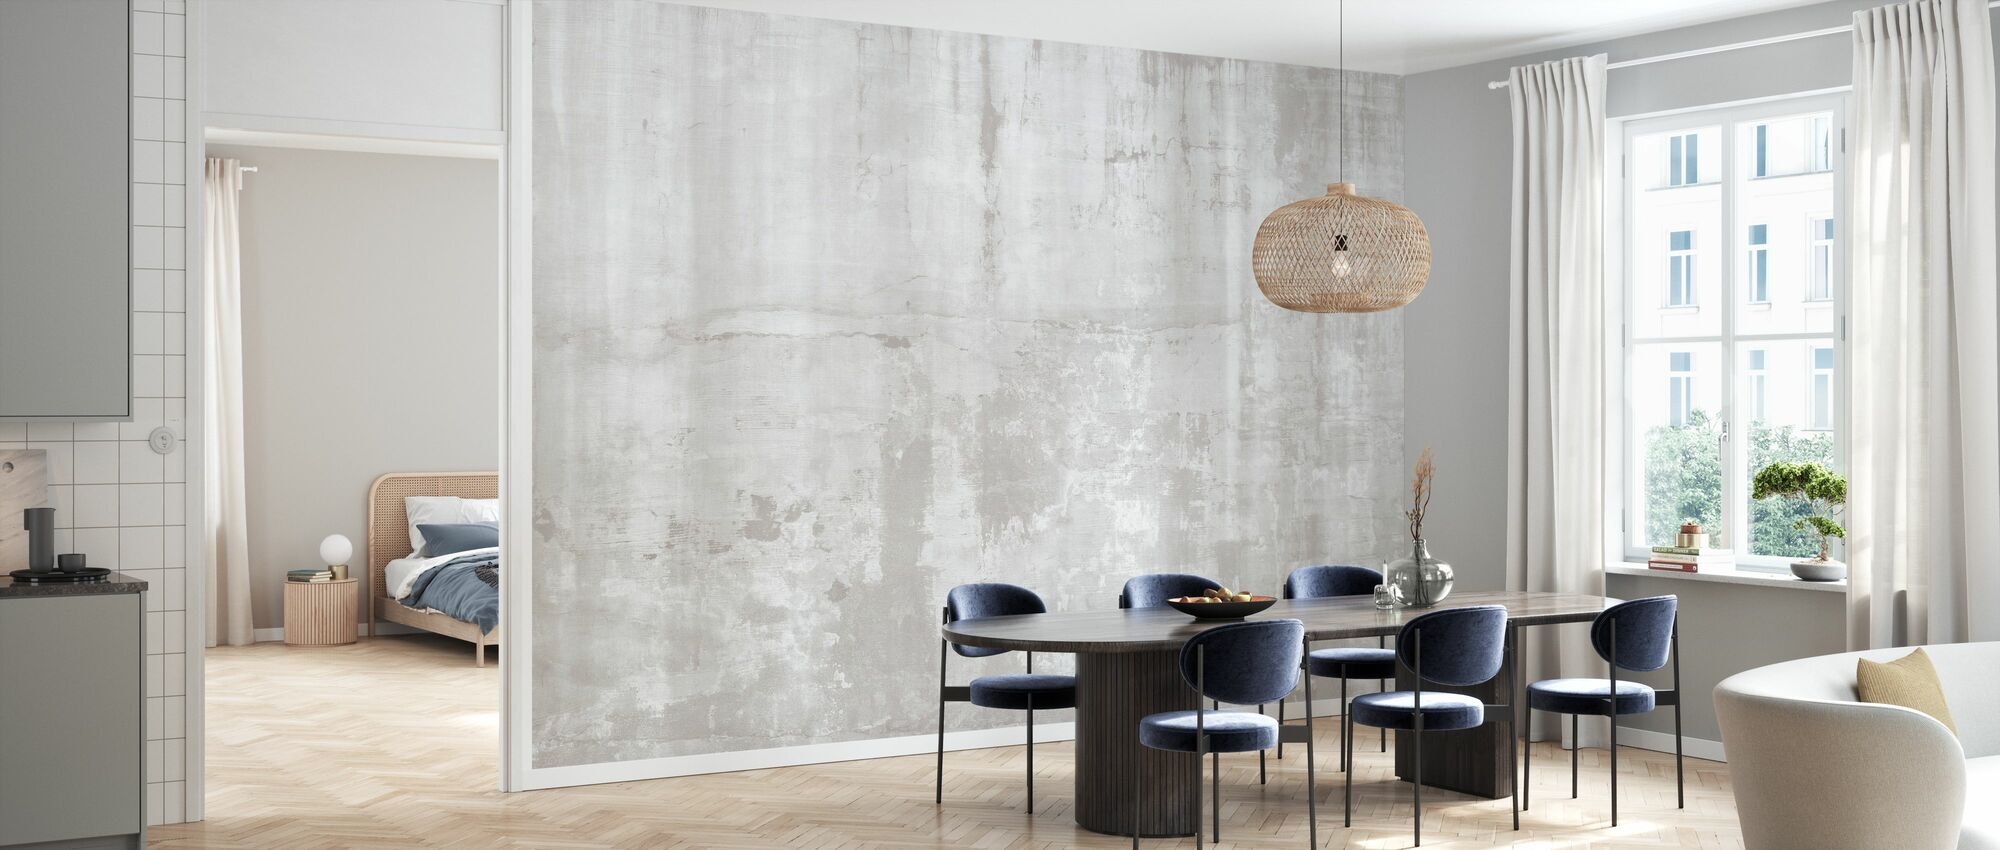 Weathered Concrete Wall - Light - Wallpaper - Kitchen